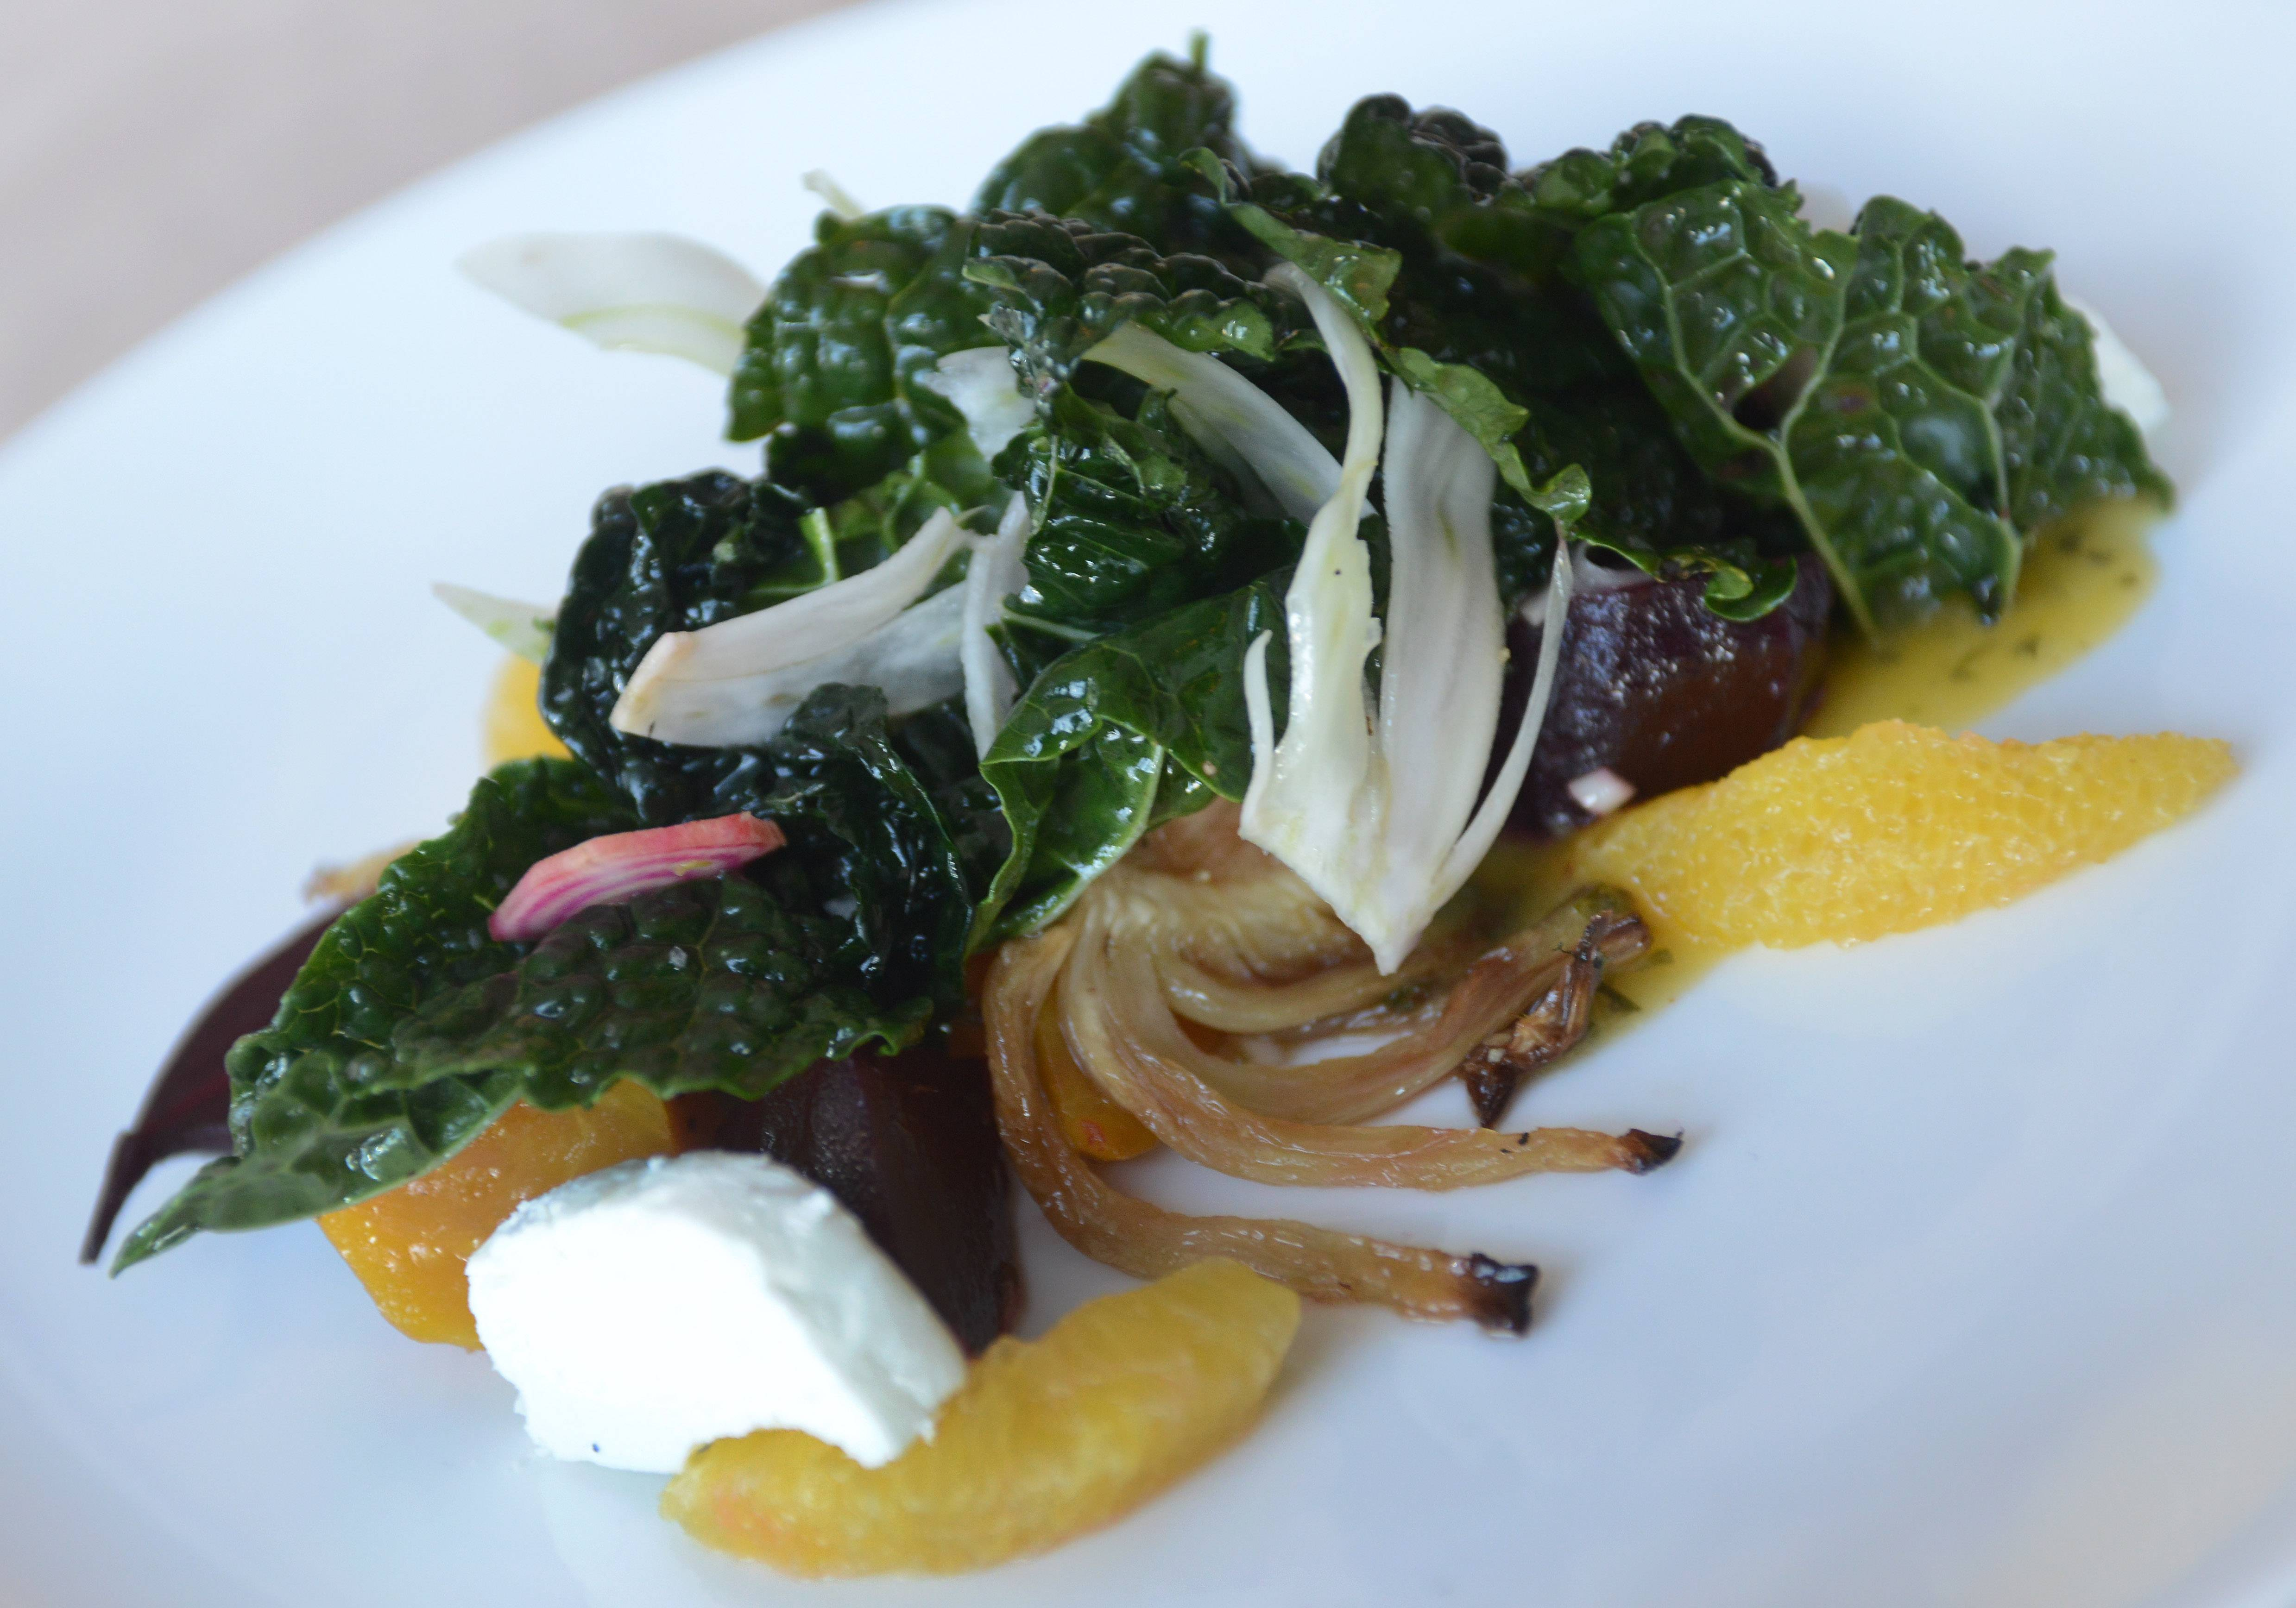 Roasted and chopped red and golden beets mixed with goat cheese, fennel, kale and blood orange in the beet salad at Grillhouse by David Burke in Schaumburg.